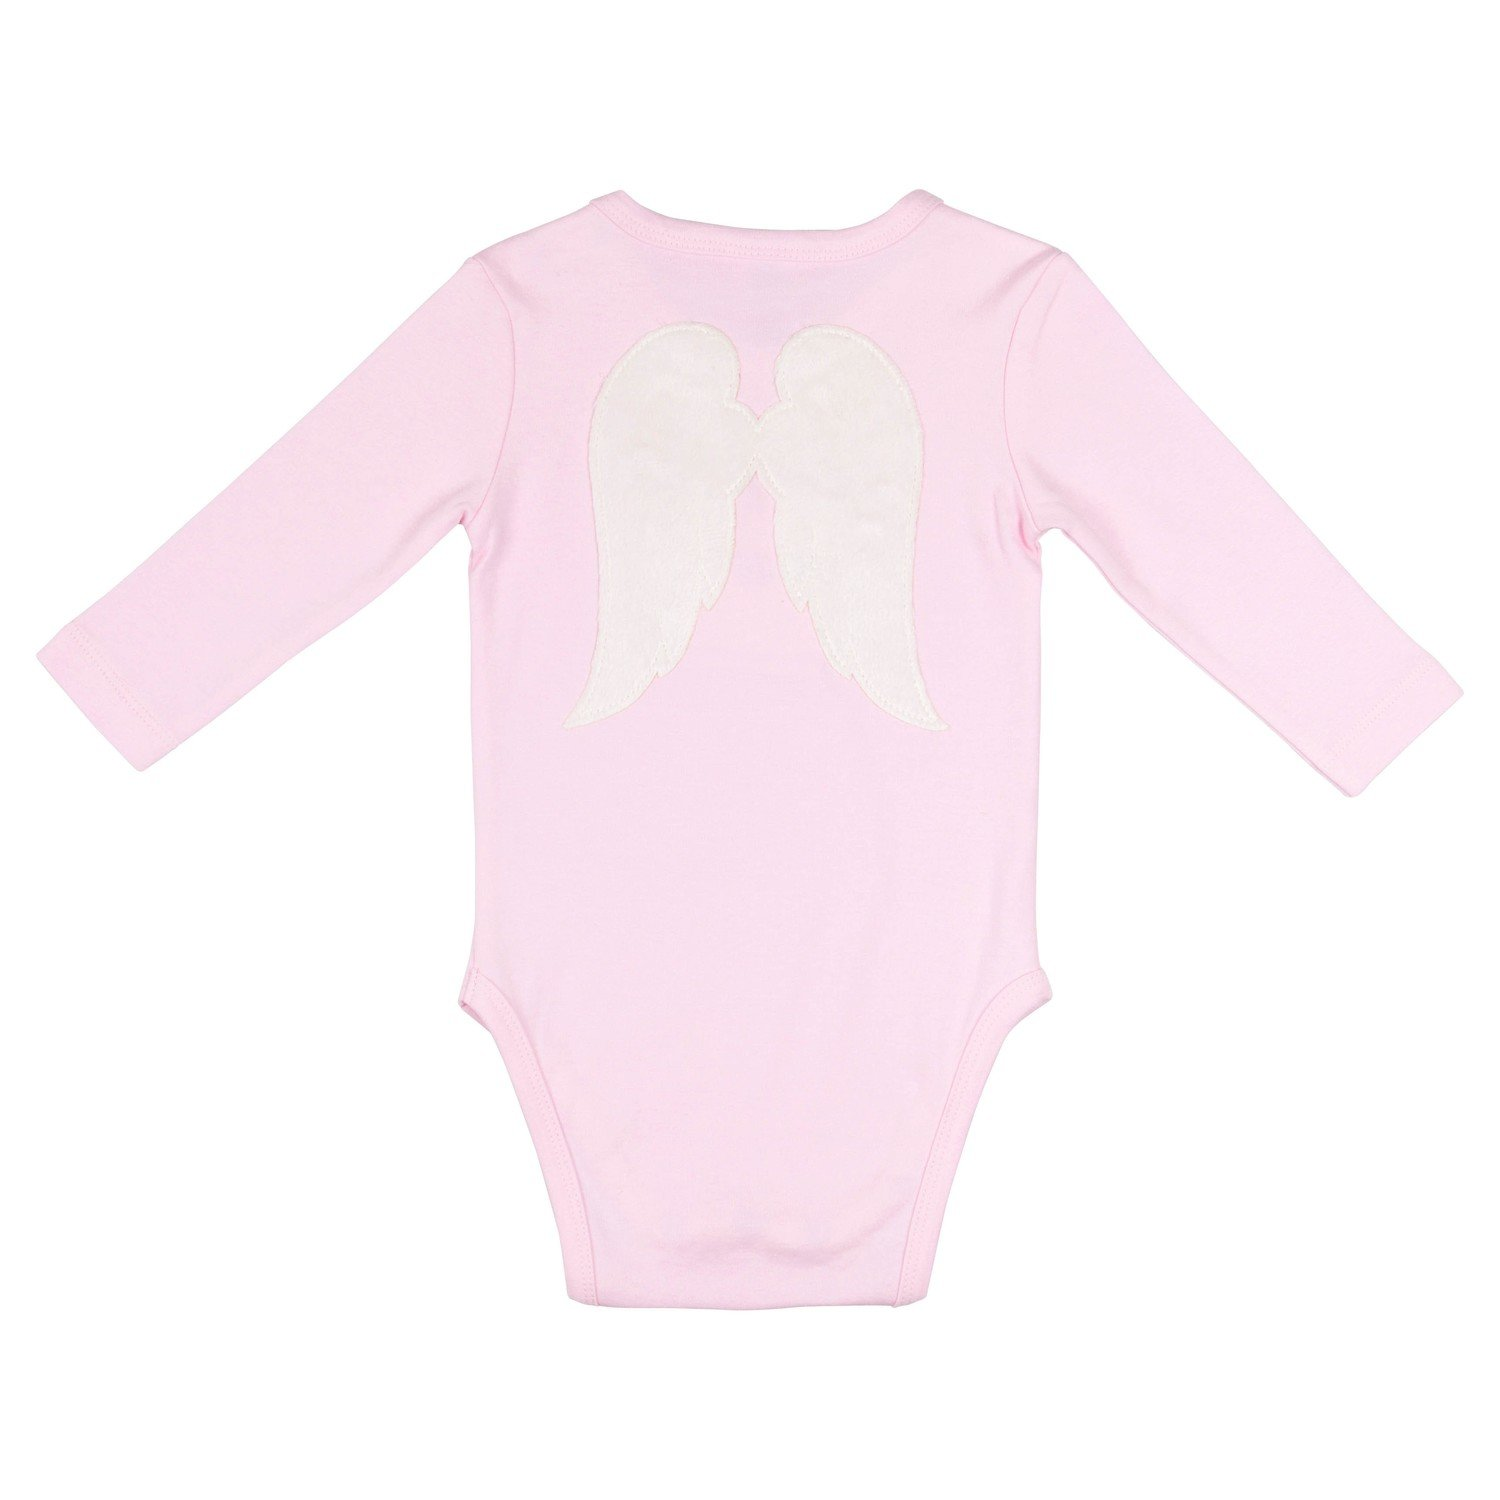 Baby Angel Playsuit Pink